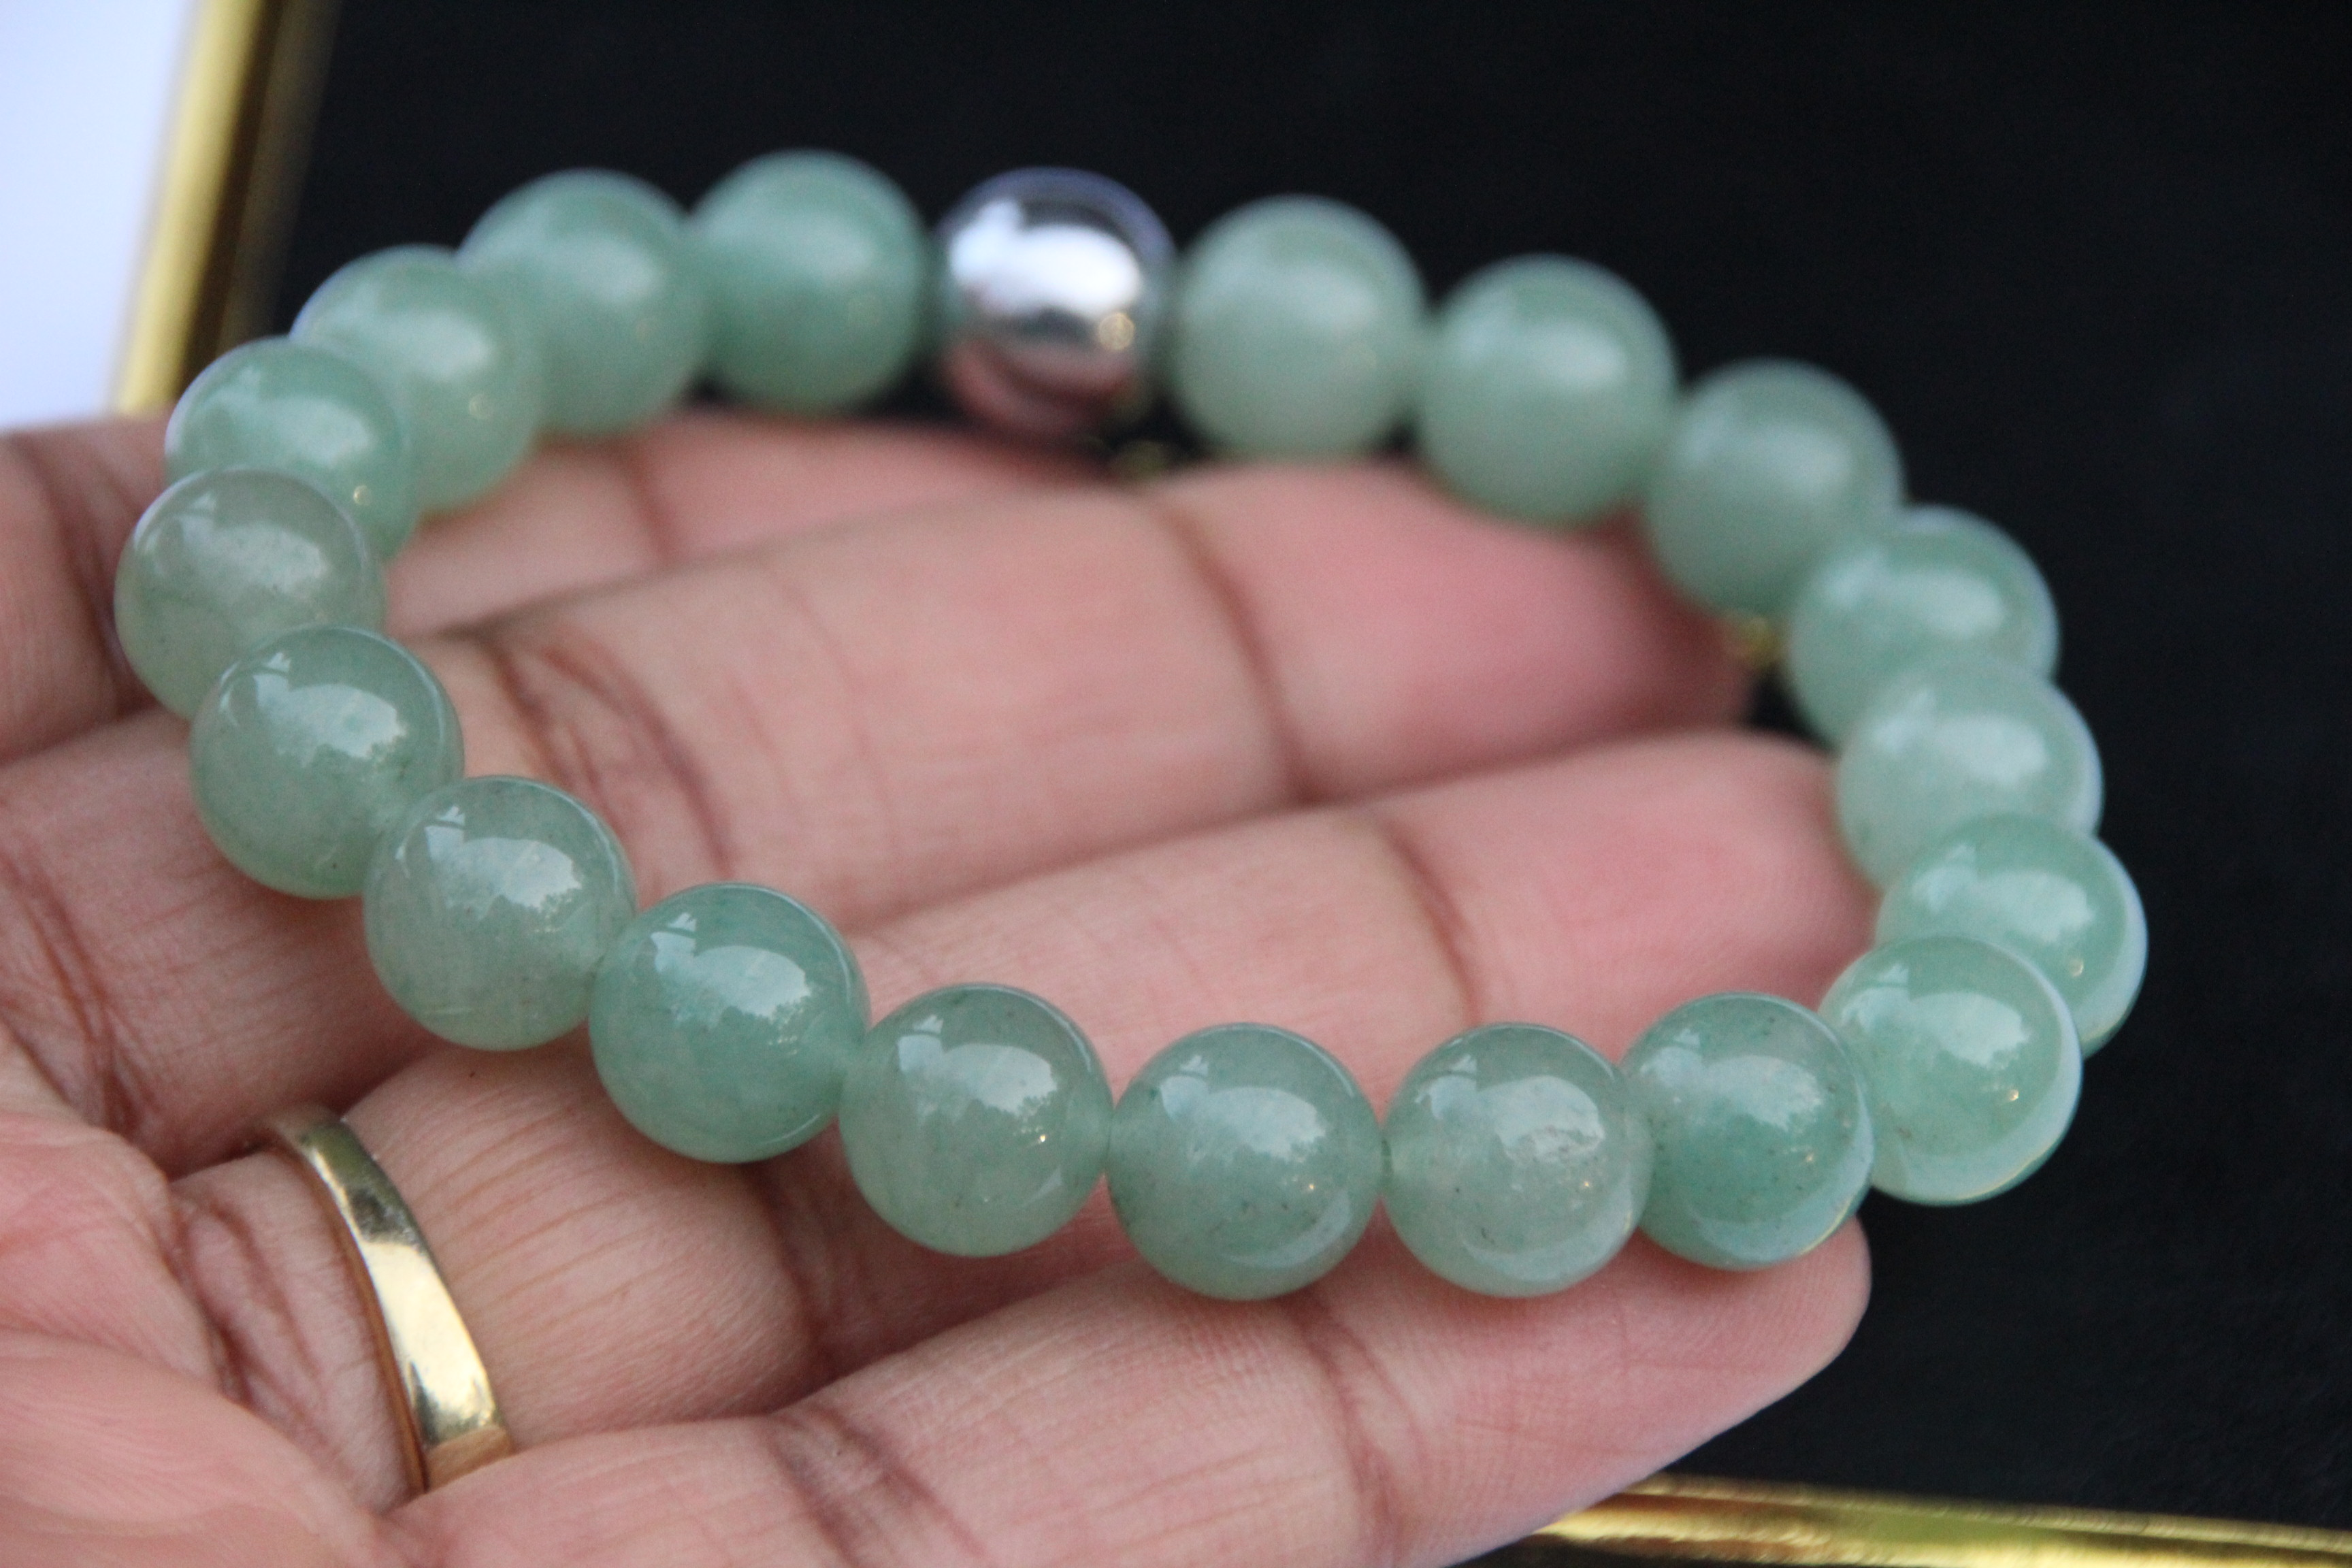 avery-10mm-pastel-green-aventurine-silver-hematite-bead-mens-bracelet-for-guys-my-husband-dad-brother-son-boyfriend-gifts-for-him-men-2021-green.jpg